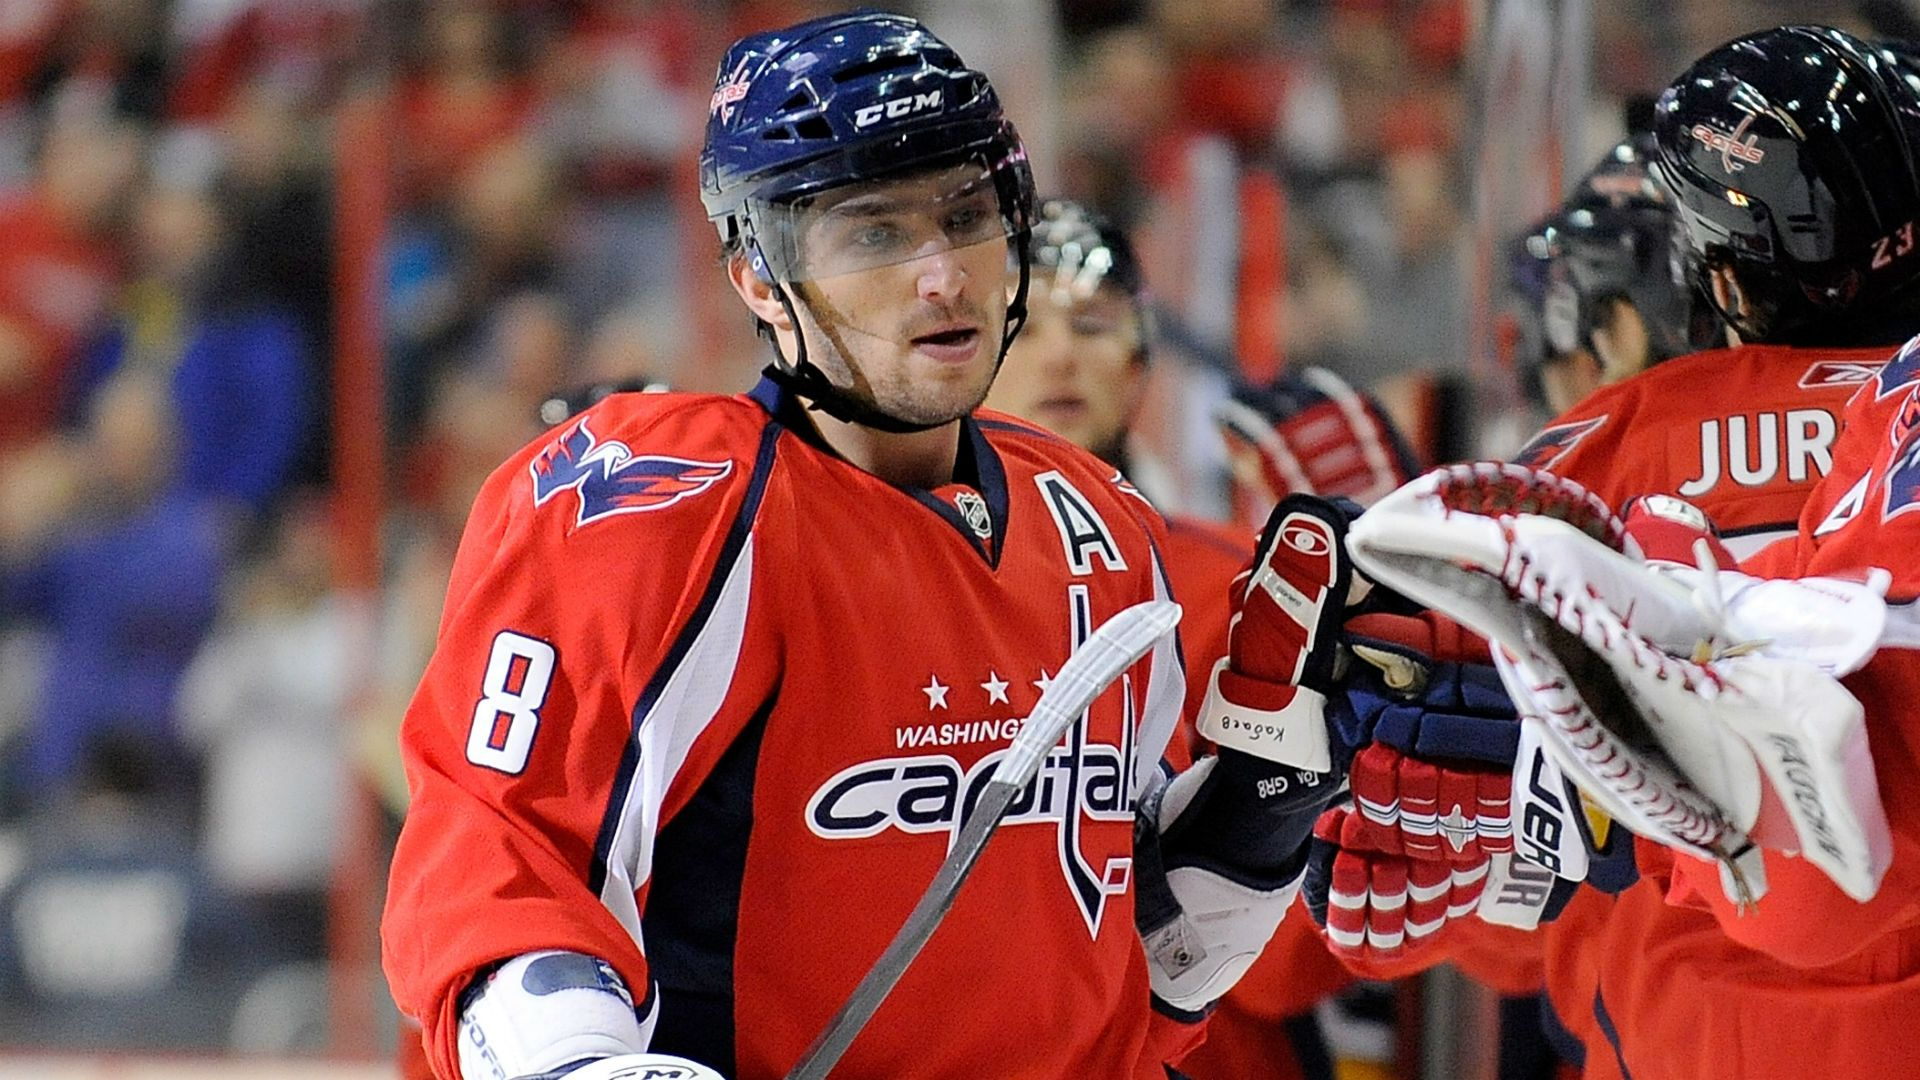 Alexander Ovechkin Washington 2018 1